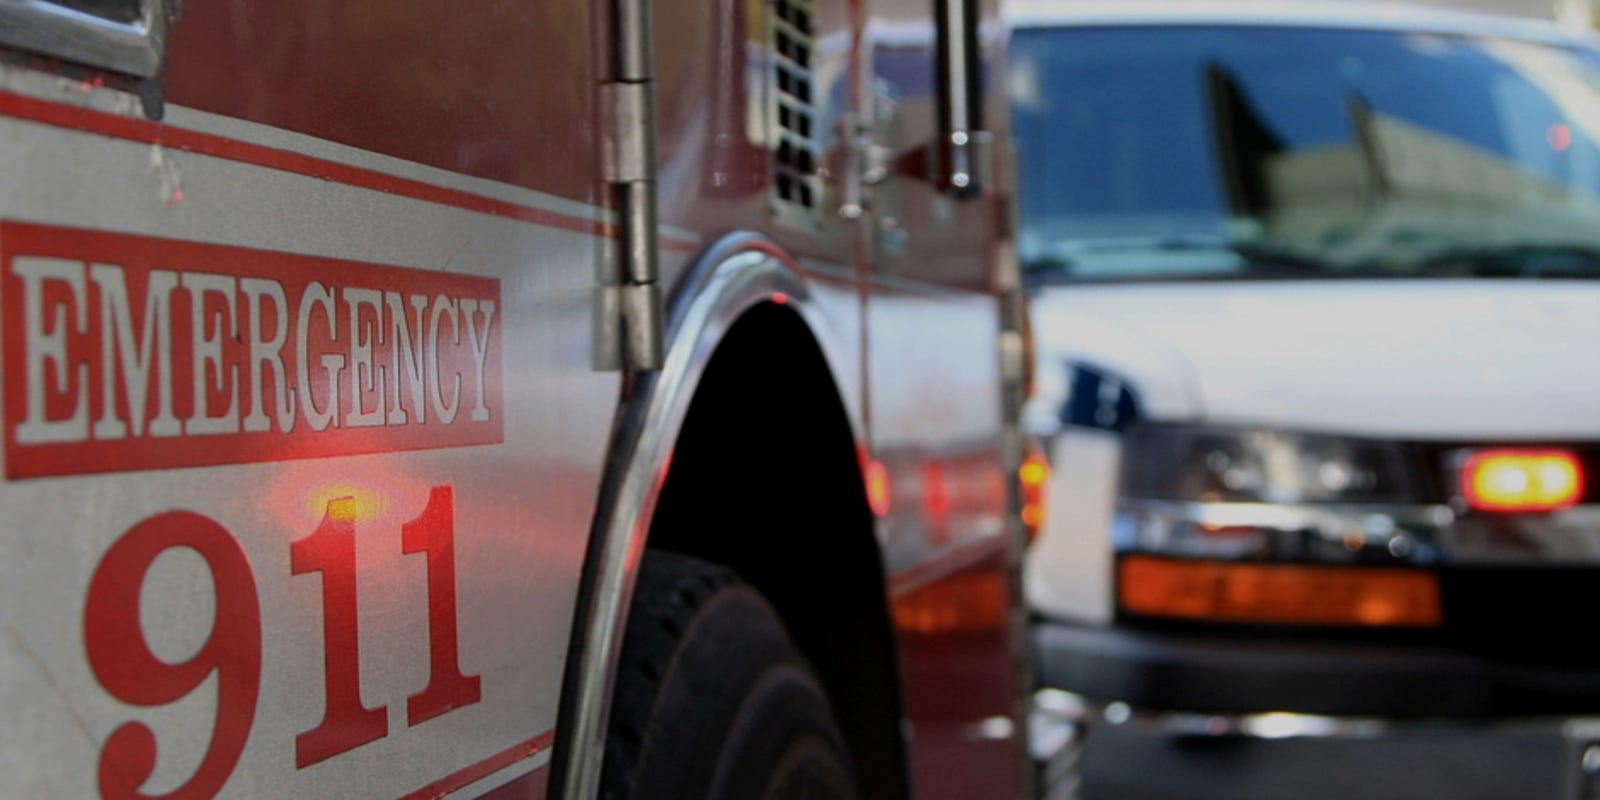 Gas leak evacuates homes, closes roads in southeast Fort Collins Tuesday morning